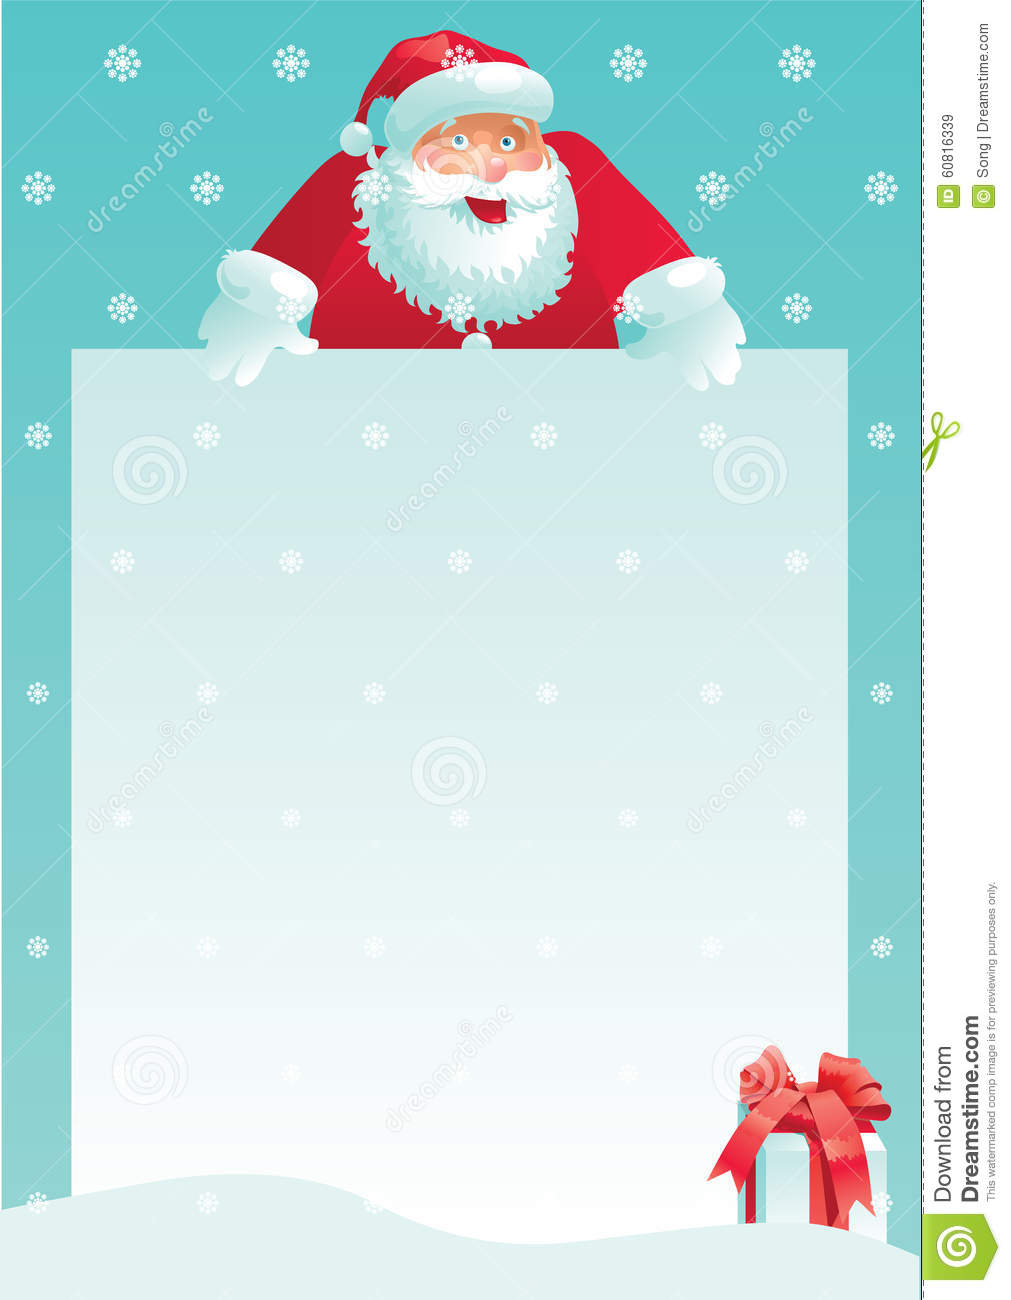 Santa Claus And Gift Box With Christmas Letter Stock Vector - Image ...